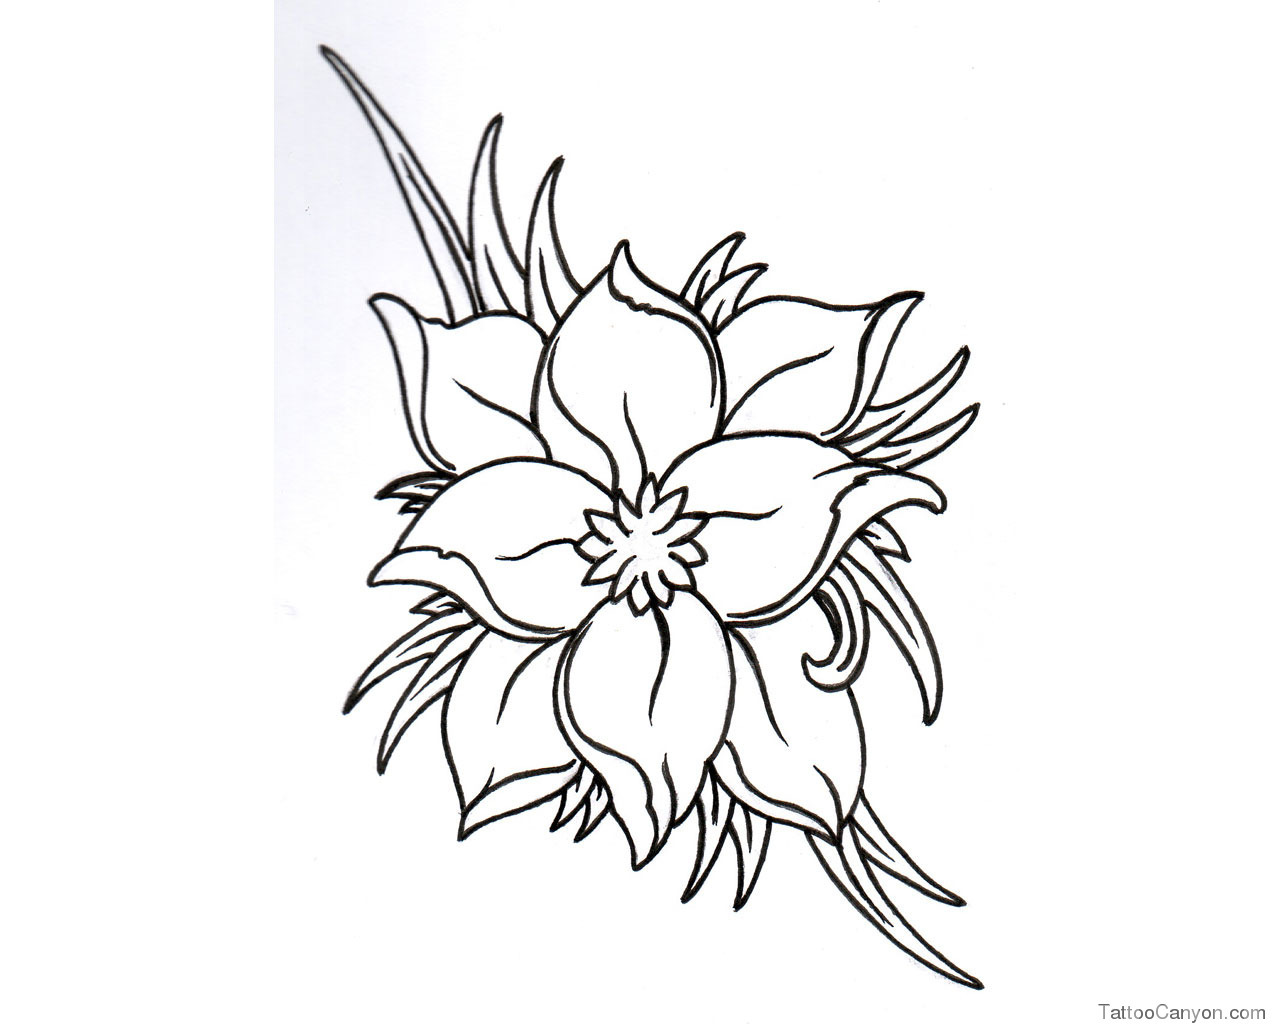 Jasmine flower drawing tattoo at getdrawings free for personal 1280x1024 black and white flower tattoos free download clip art free izmirmasajfo Images